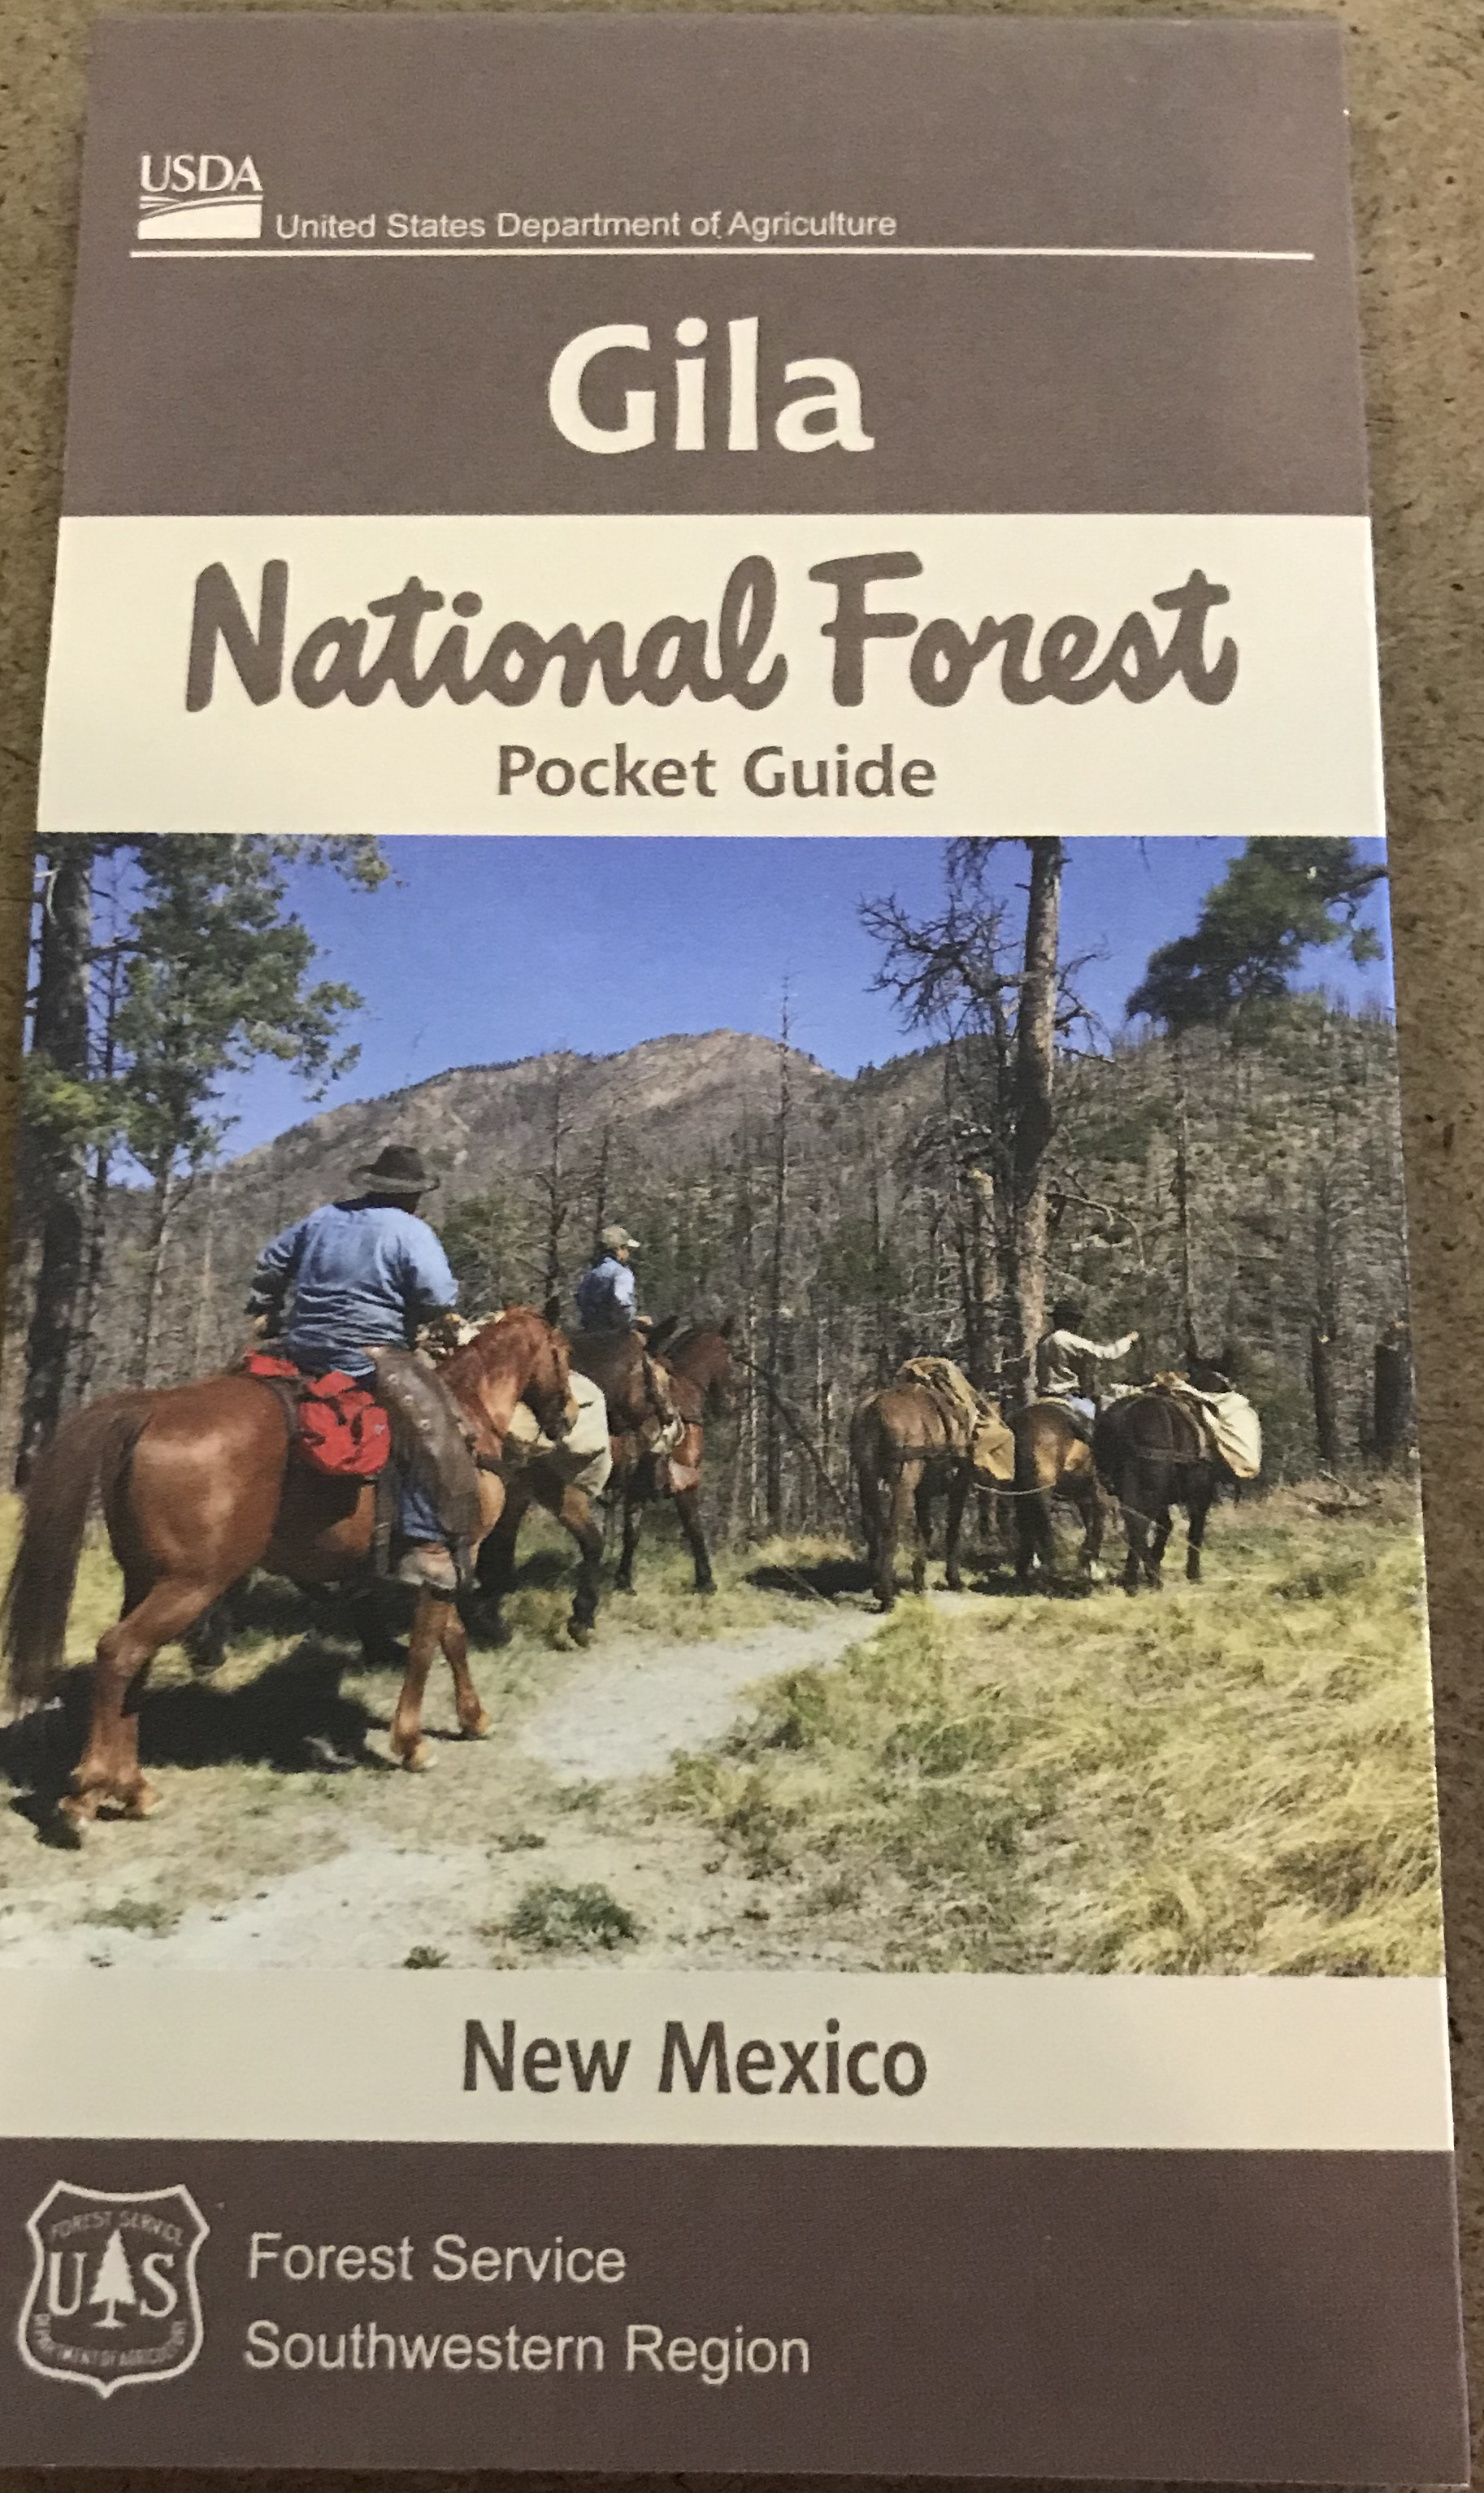 Gila National Forest Pocket Guide